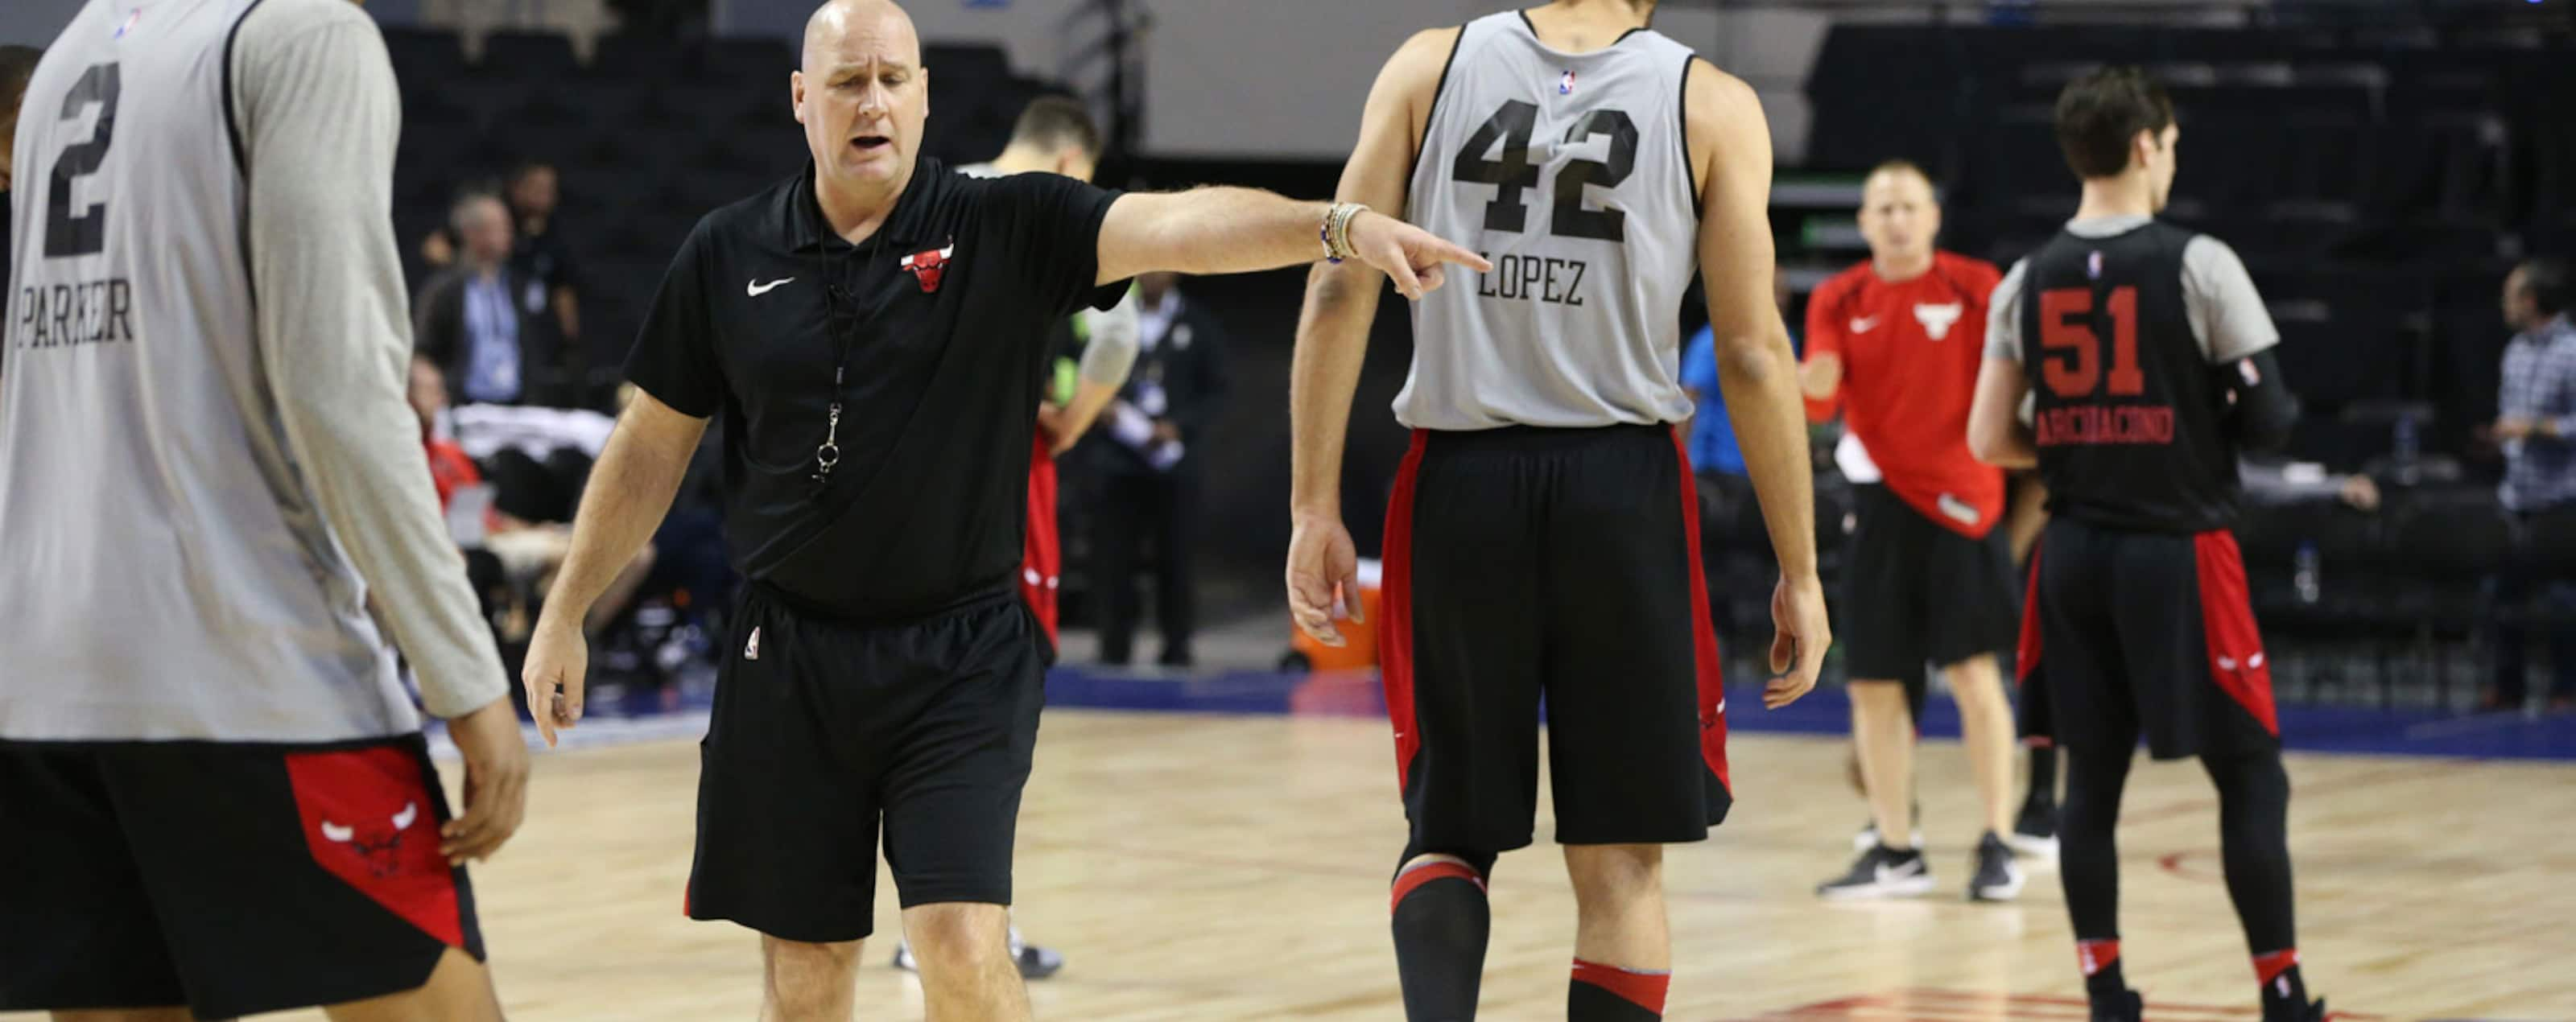 Head Coach Jim Boylen of the Chicago Bulls coaches during practice and media availability as part of the NBA Mexico Games 2018 on December 12, 2018 at Arena Ciudad de Mexico in Mexico City, Mexico